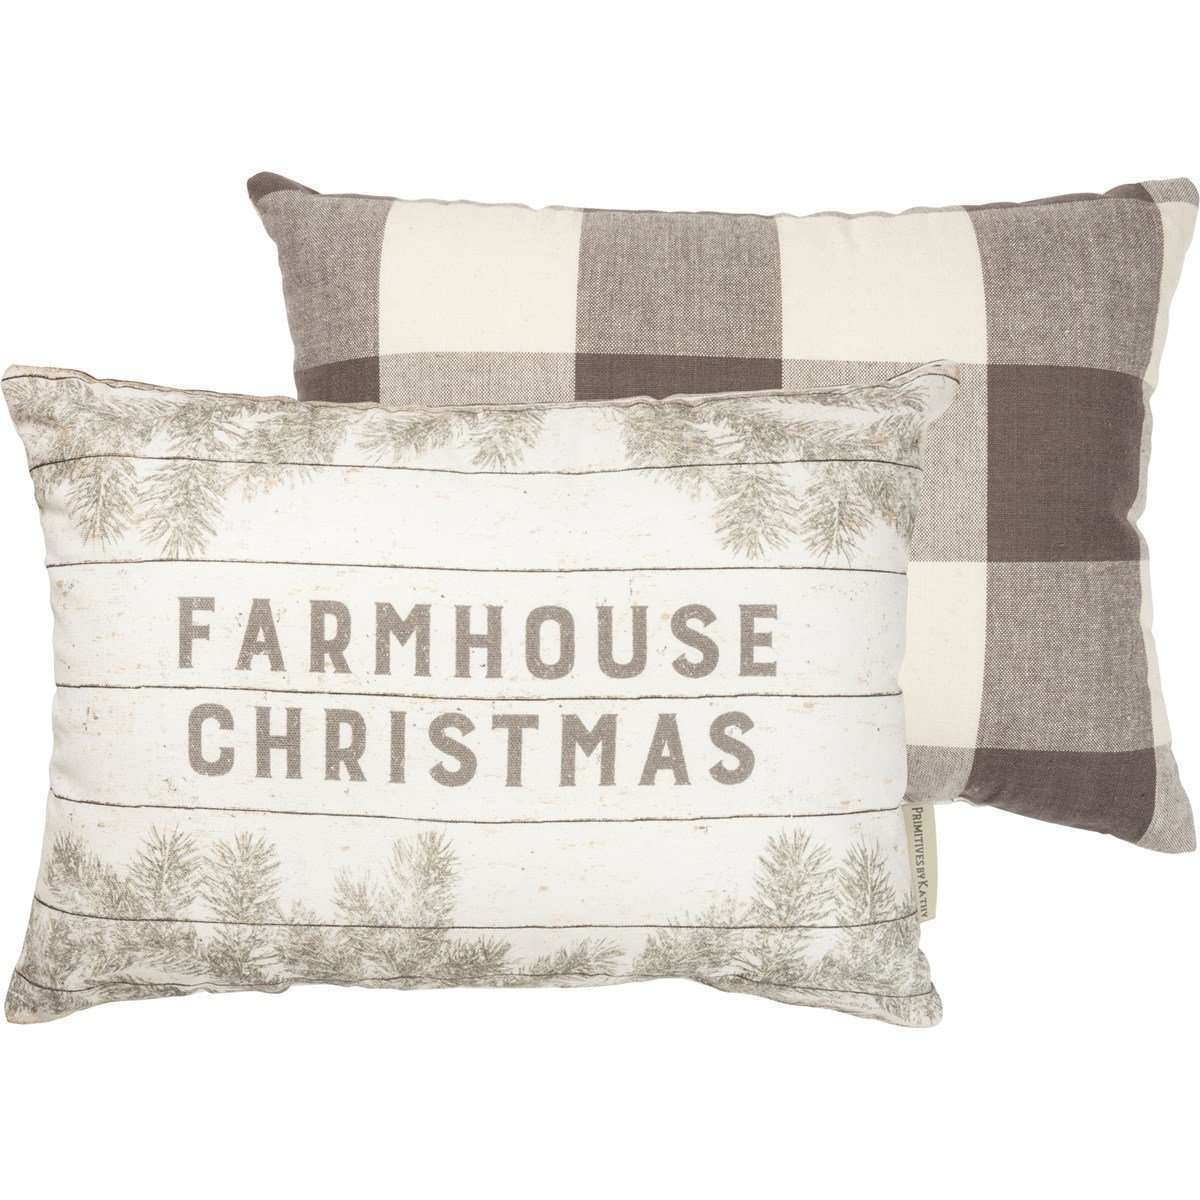 Farmhouse Christmas Pillow - Little Prairie Girl